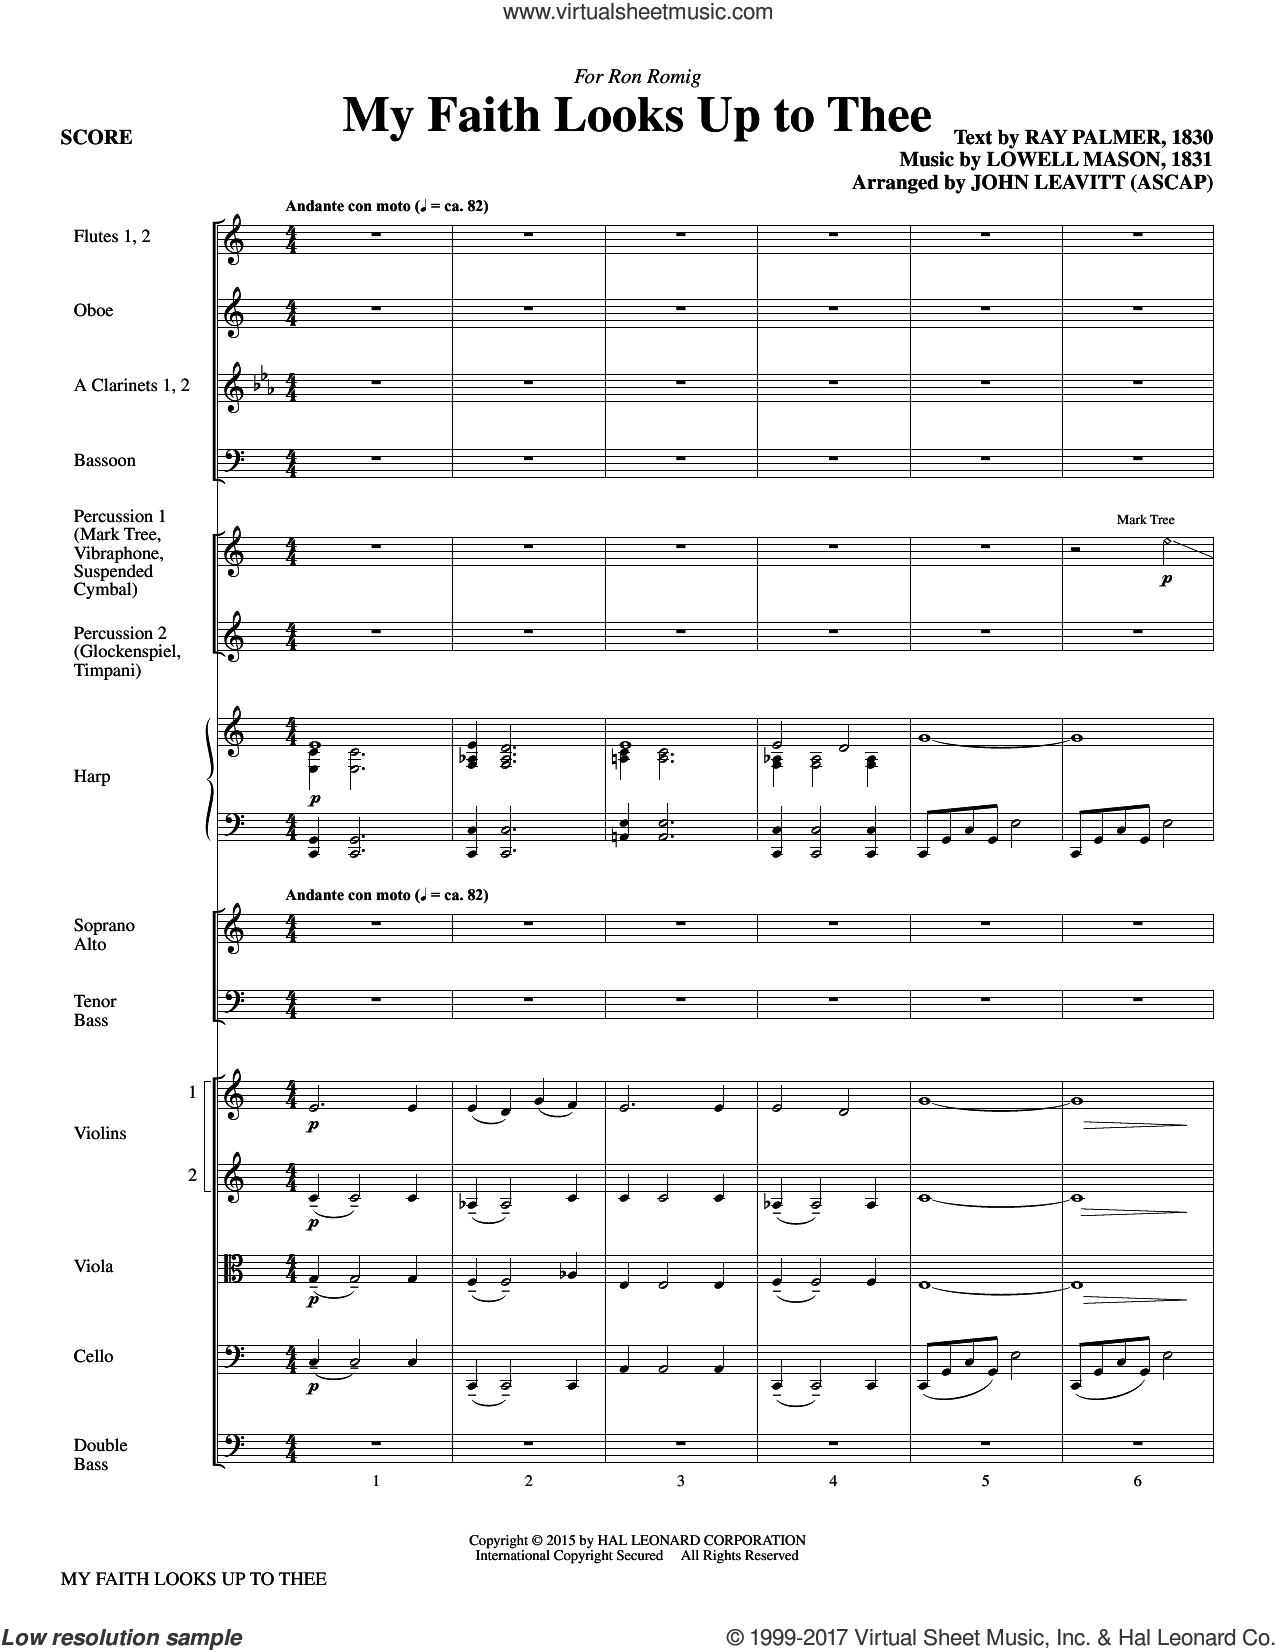 My Faith Looks Up To Thee (COMPLETE) sheet music for orchestra/band by John Leavitt, Lowell Mason and Ray Palmer, intermediate. Score Image Preview.